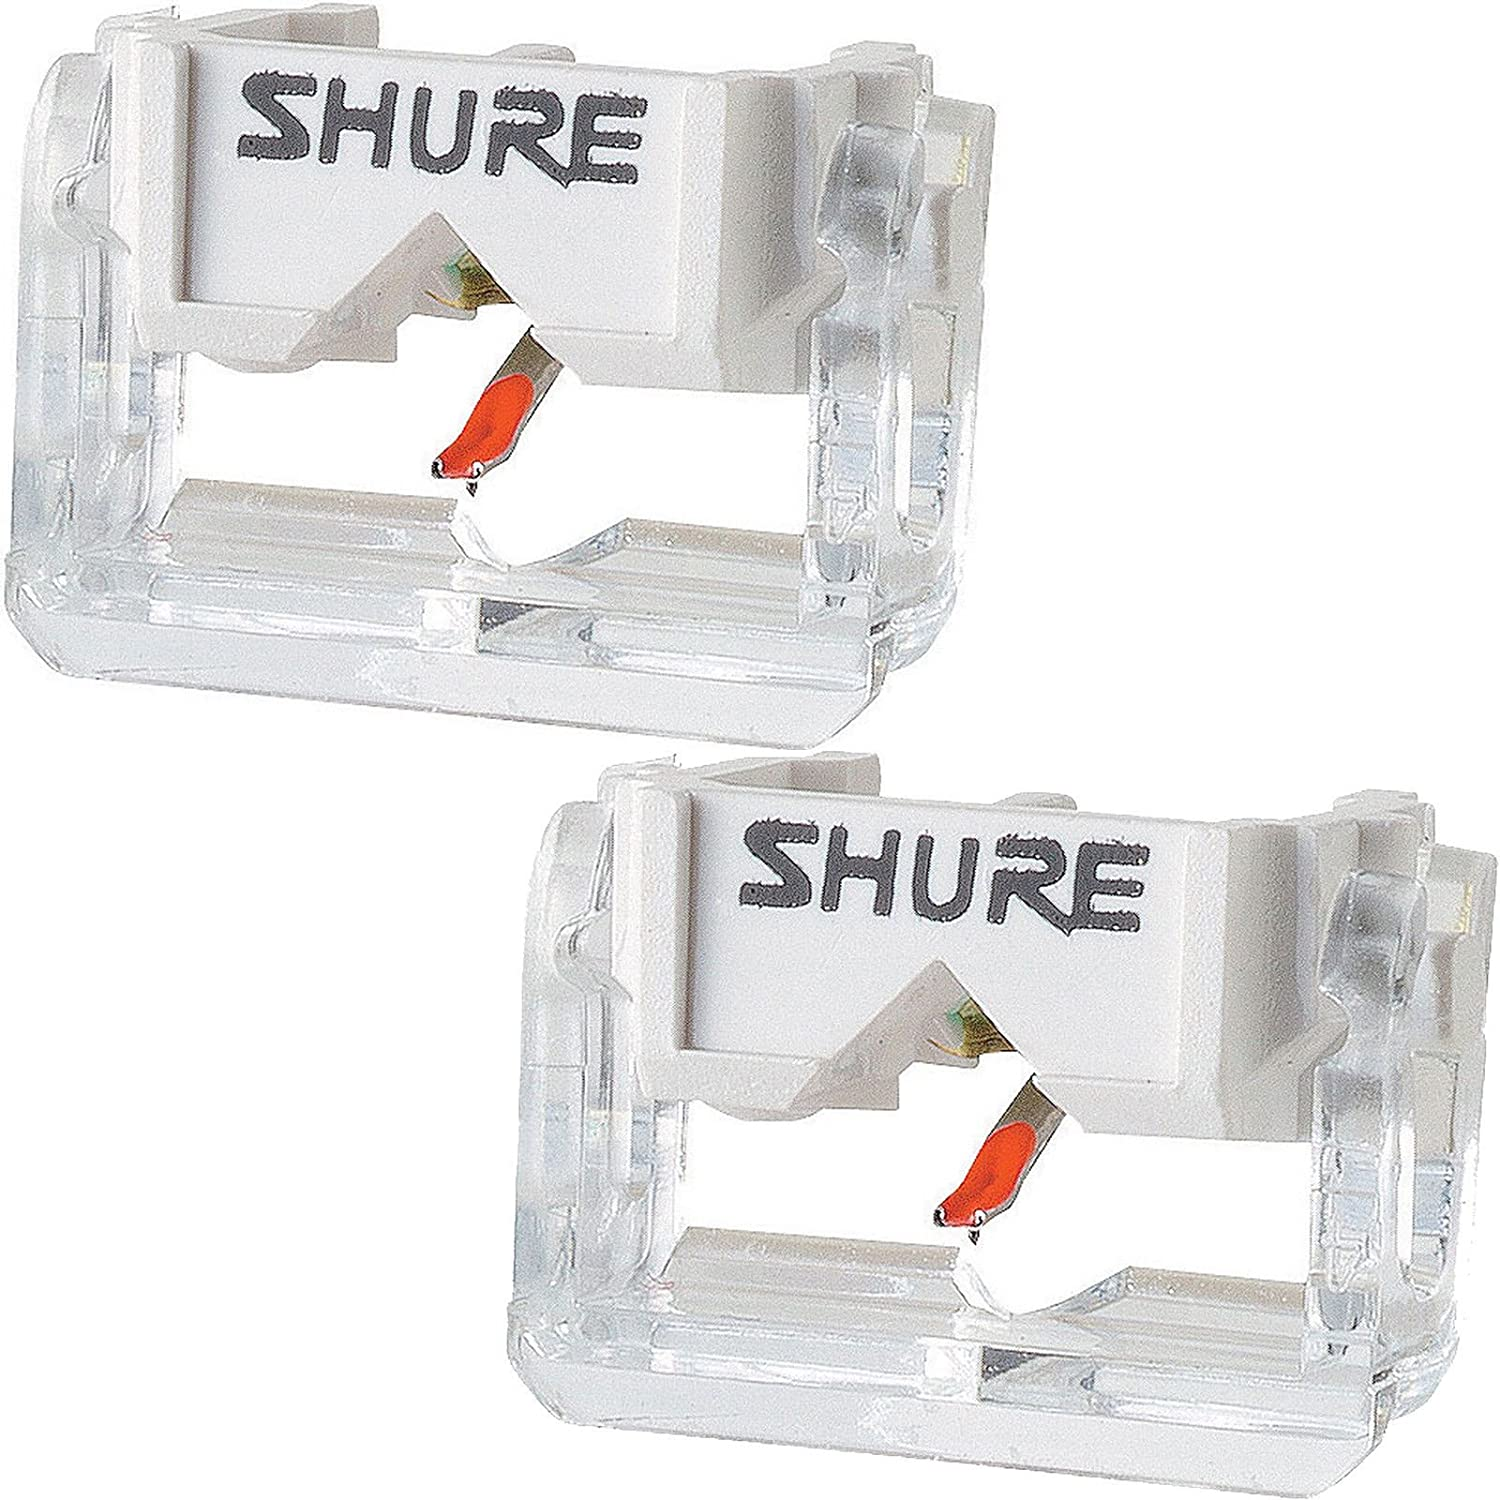 2x Shure N447Z Replacement Stylus N44-7Z Needle for M44-7 M447 Cartridge 4330609034